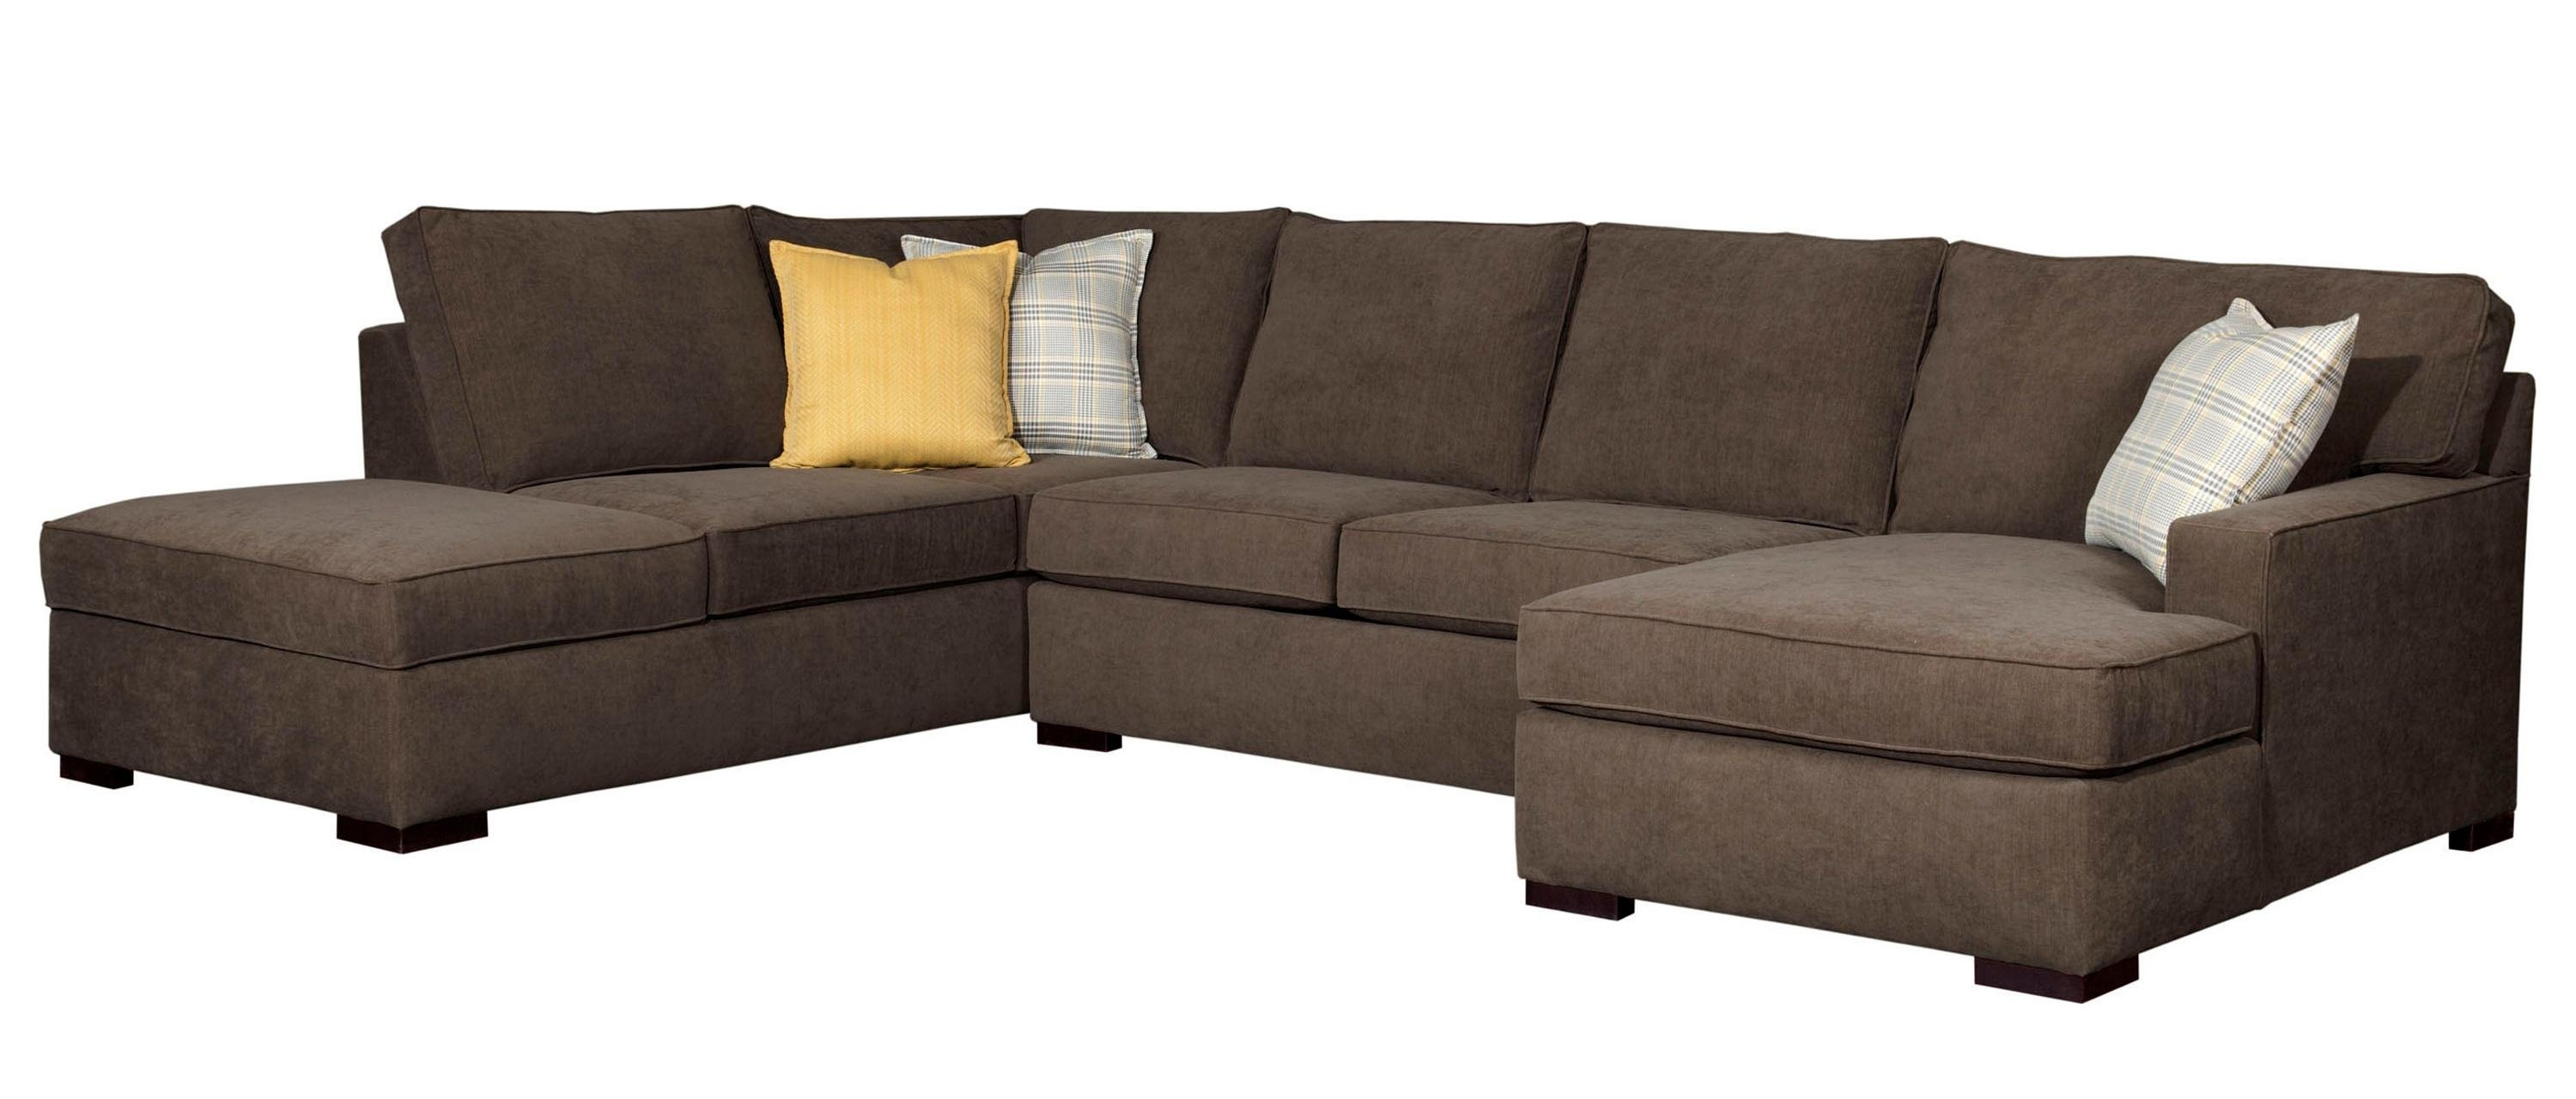 4100 Sectional Sofacorinthian – Wolf Furniture – Sofa Sectional Pertaining To Sam Levitz Sectional Sofas (View 9 of 10)